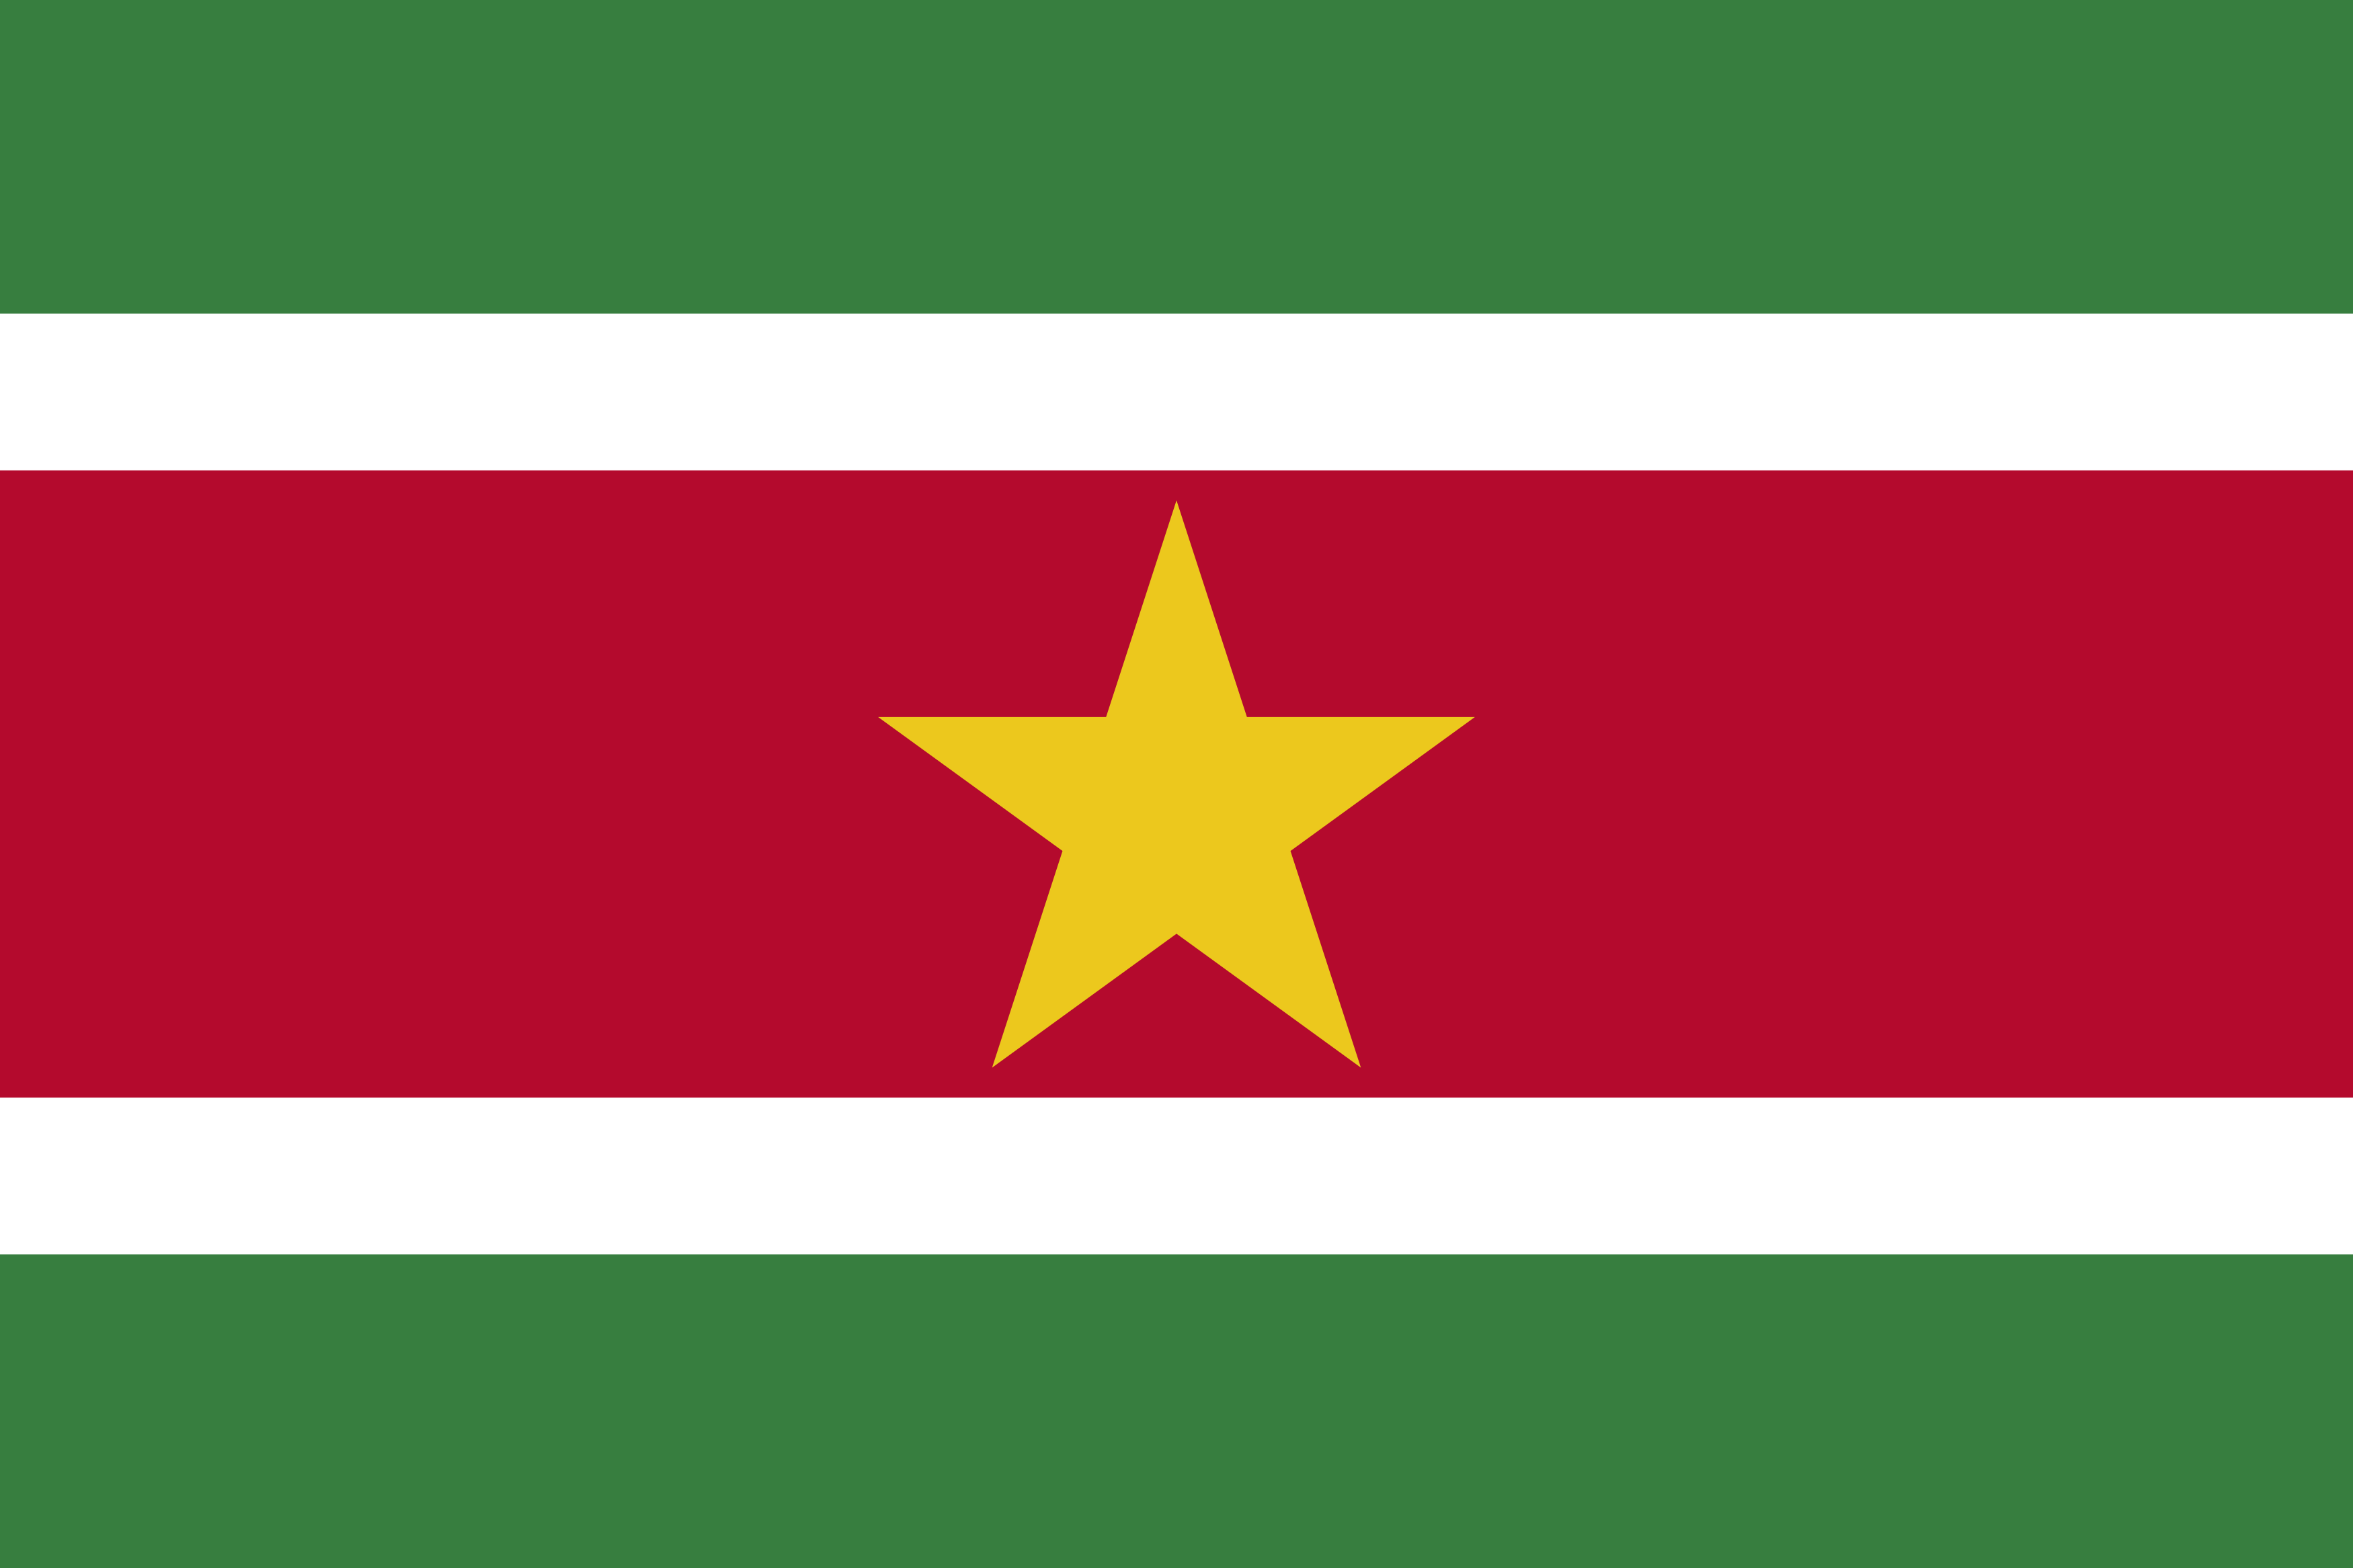 bandeira do suriname  - Bandeira do Suriname